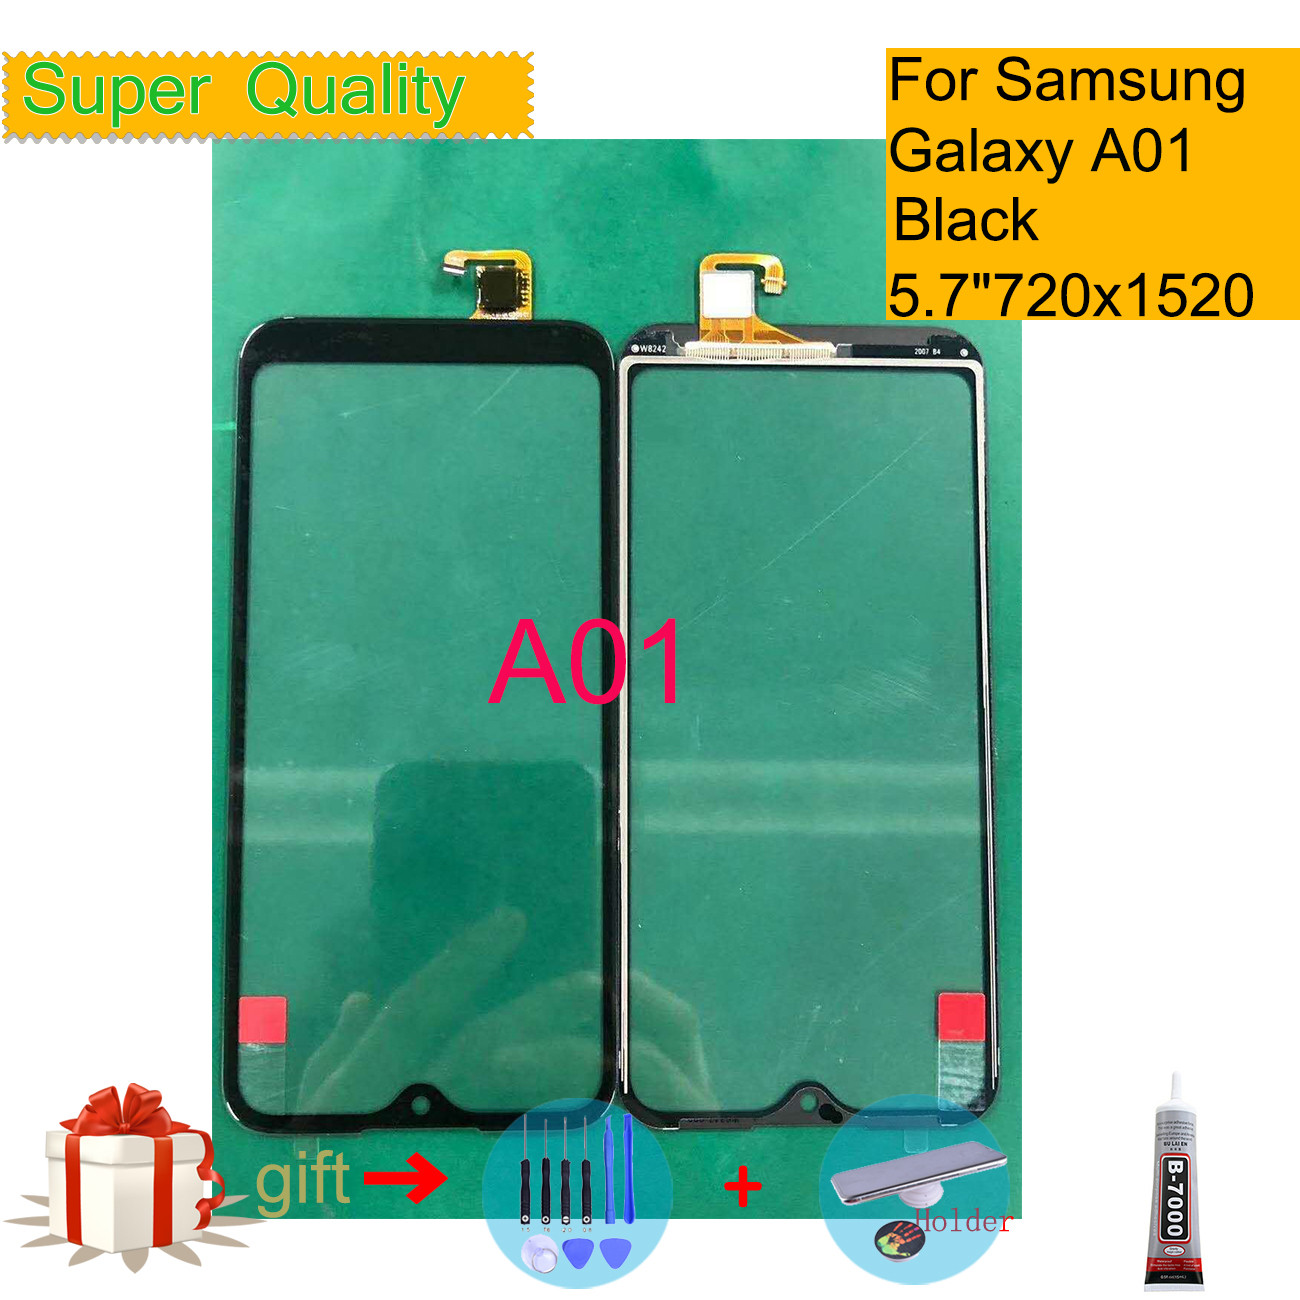 Replacement For Samsung Galaxy A01 2019 Touch Screen Digitizer Panel Sensor A01 A015 SM-A015F/DS SM-A015G/DS Front Outer Glass